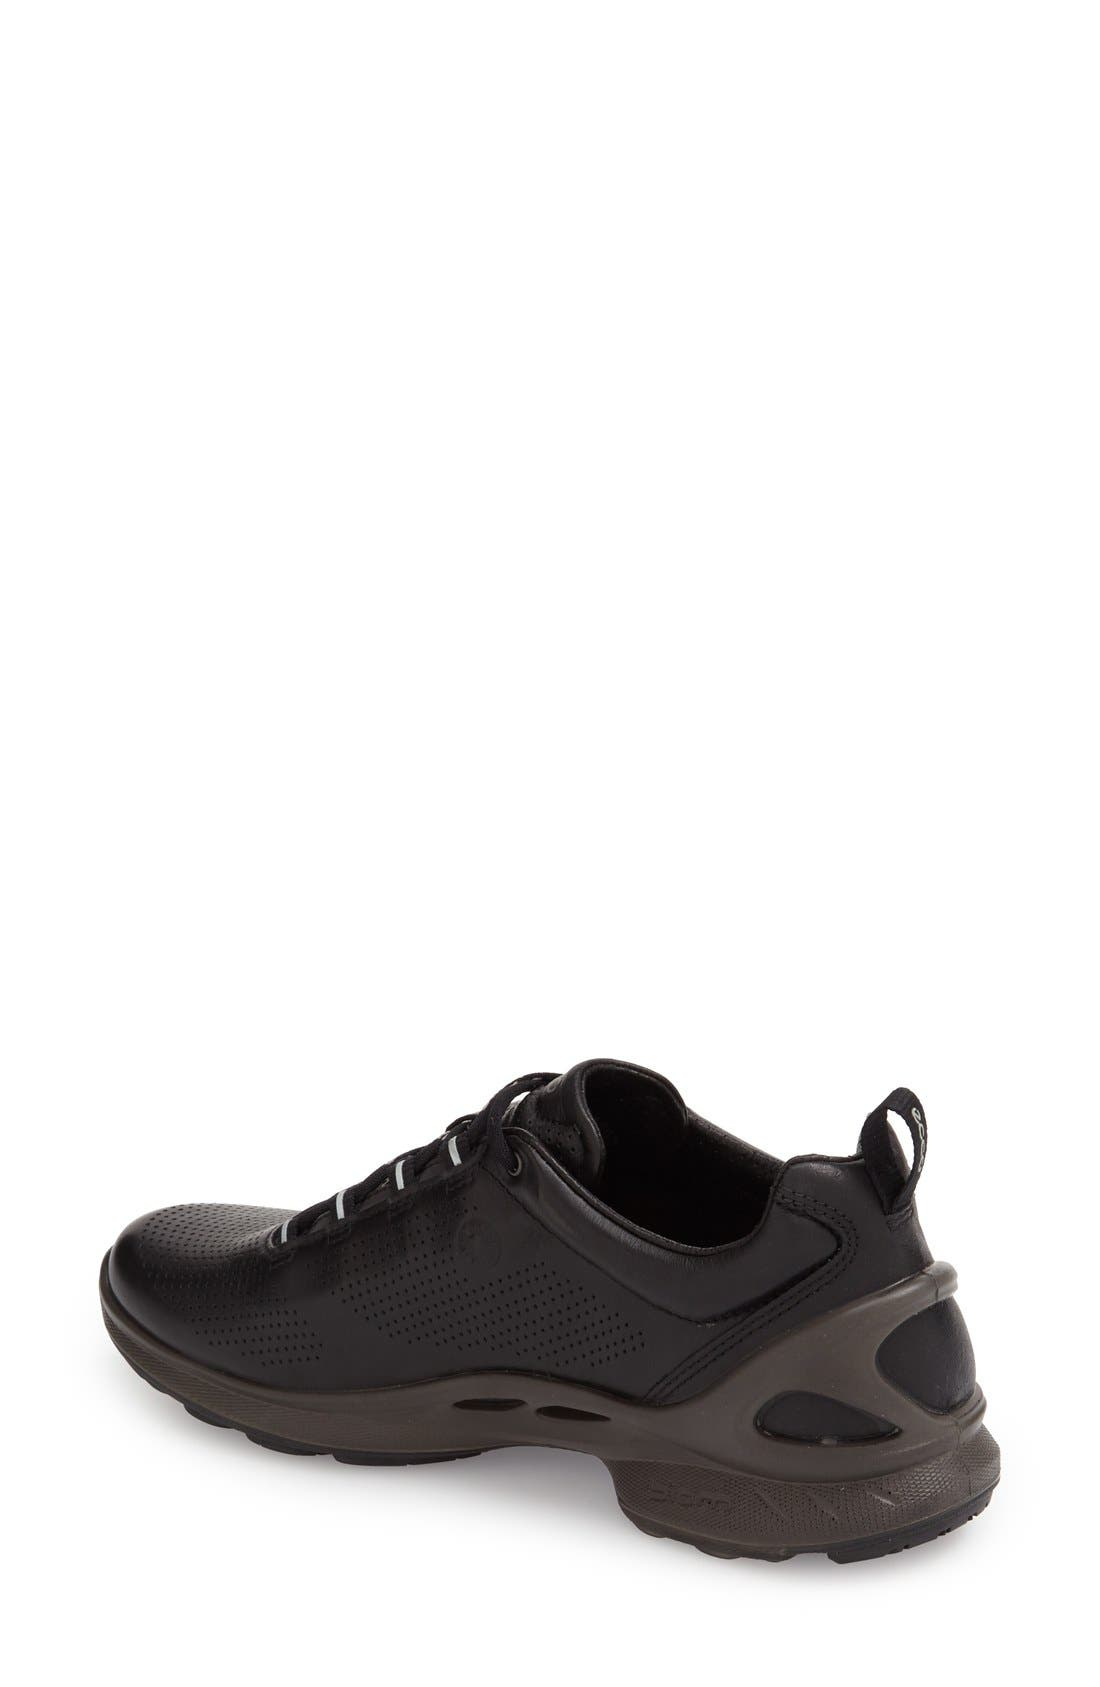 Alternate Image 2  - ECCO 'Biom Fjuel' Sneaker (Women)